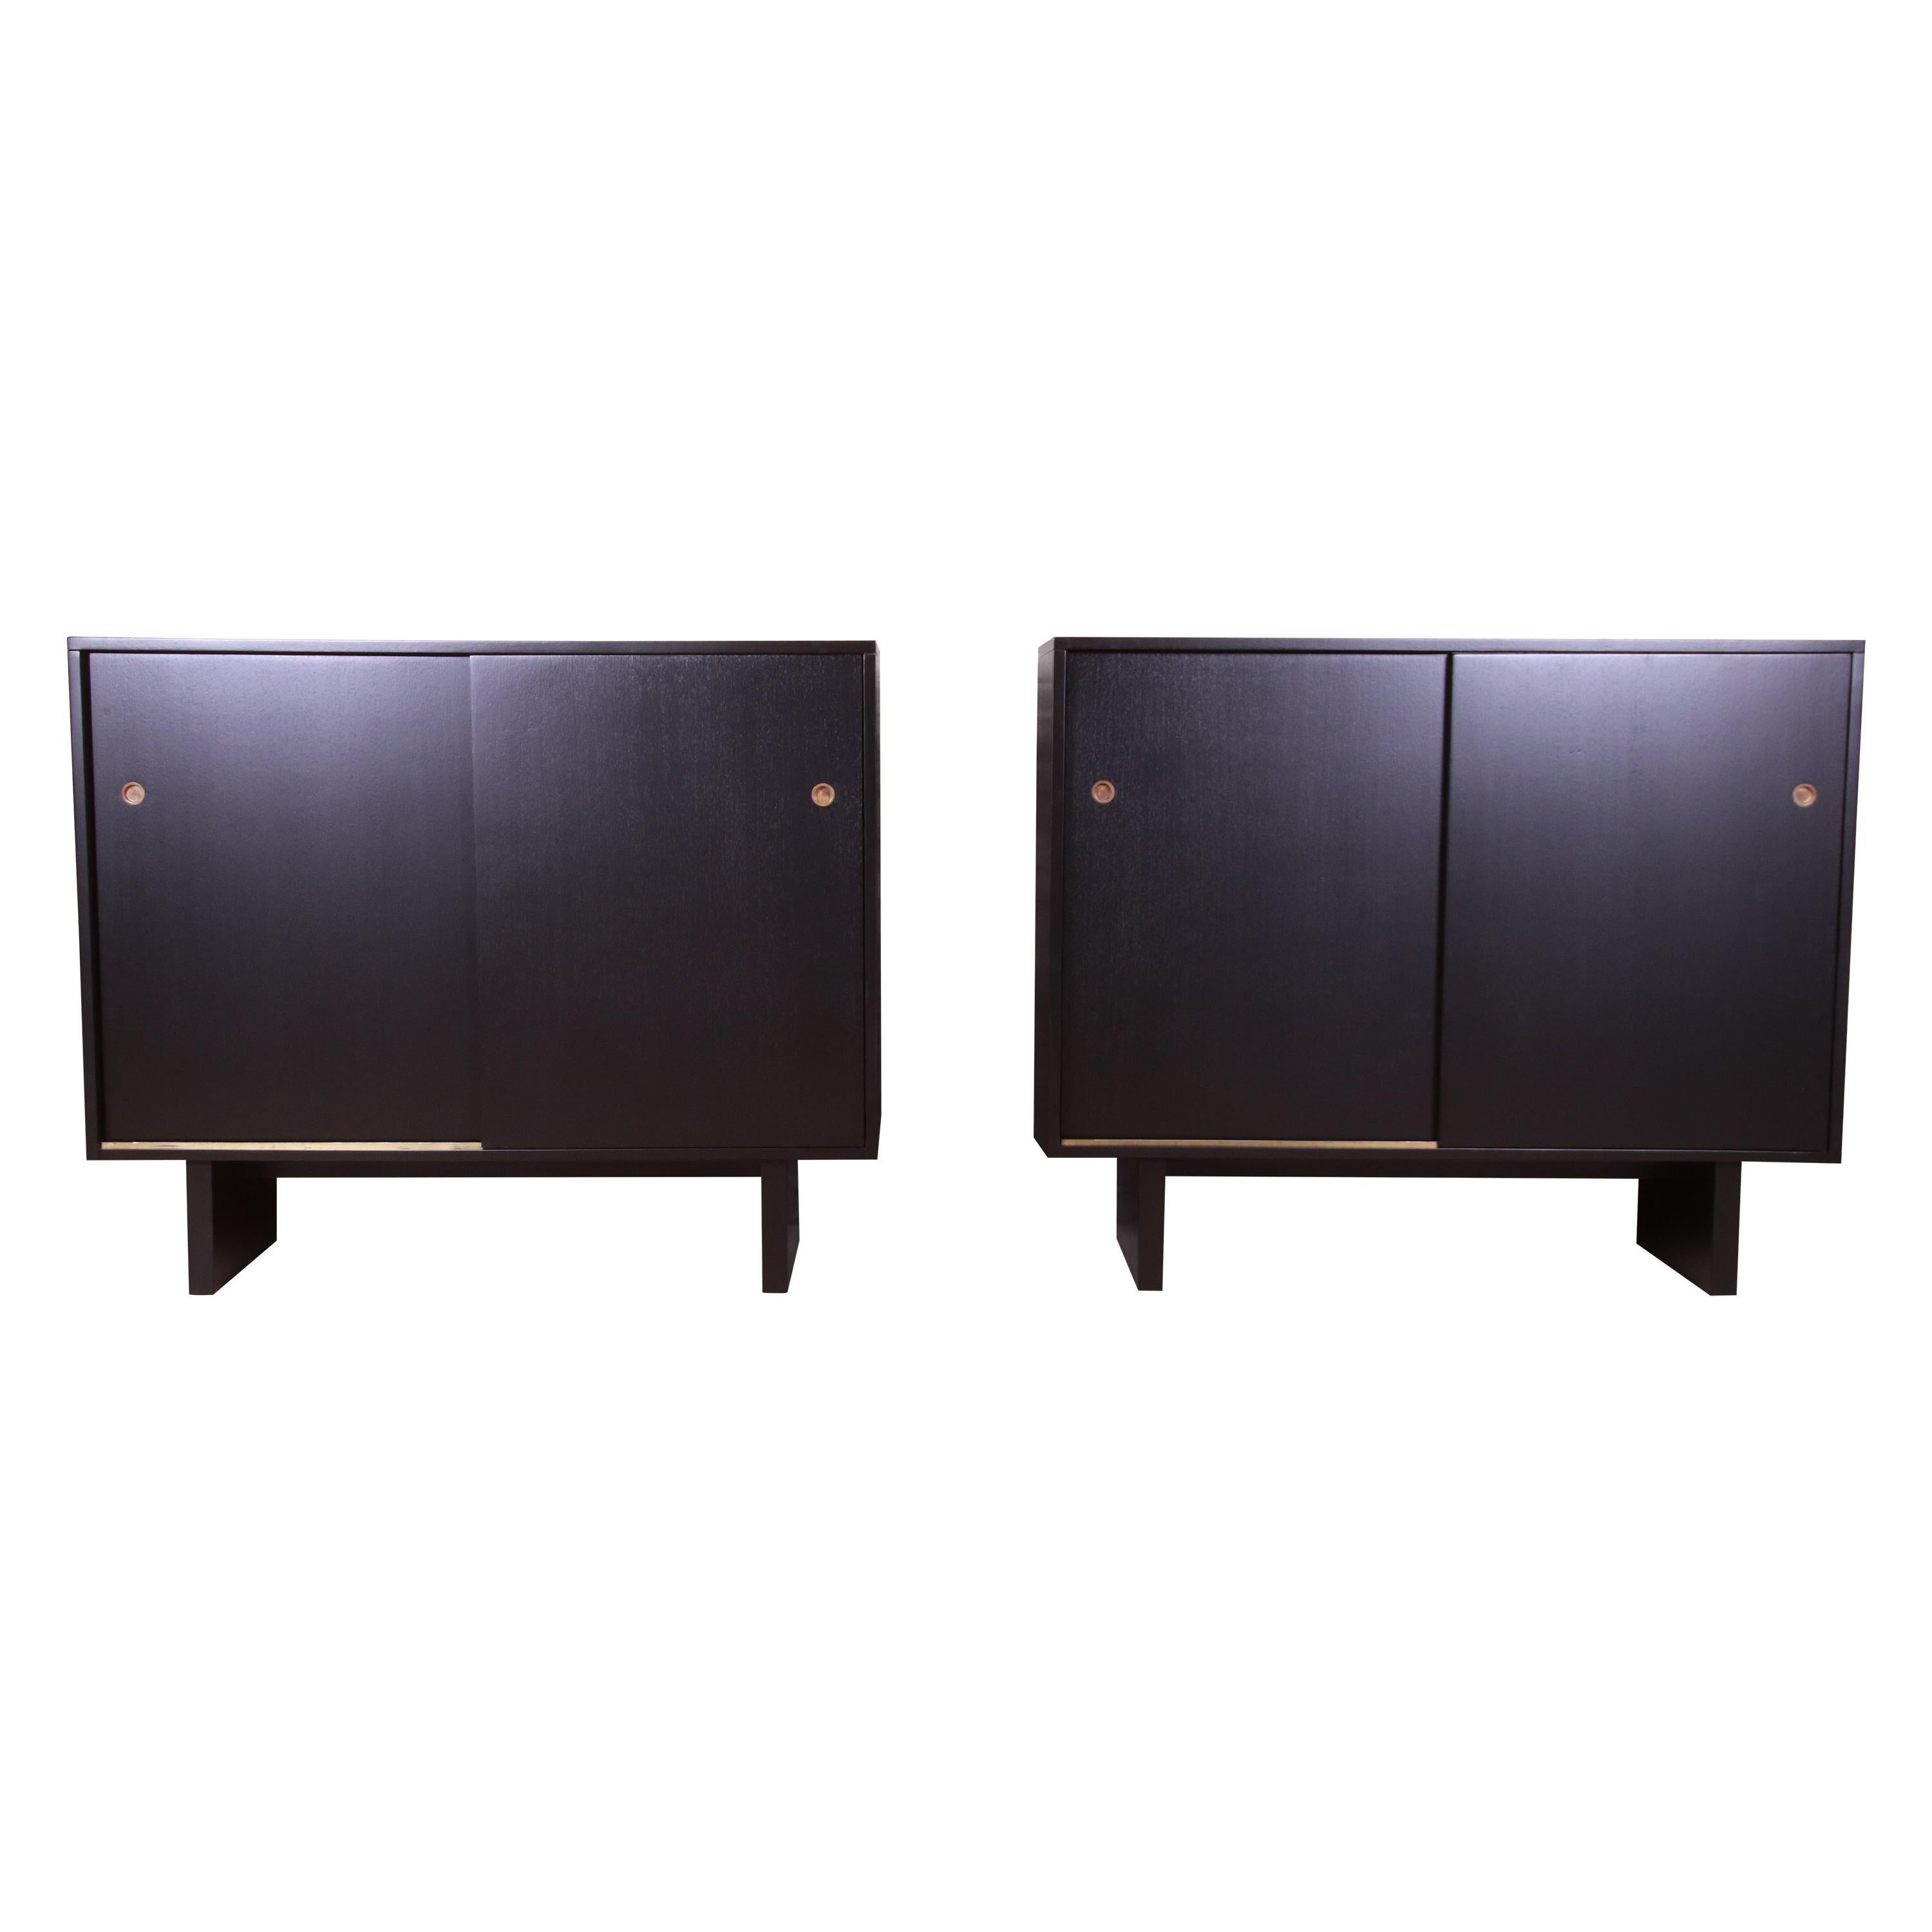 Robsjohn-Gibbings for Widdicomb Black Lacquered Gentleman's Chests, Refinished